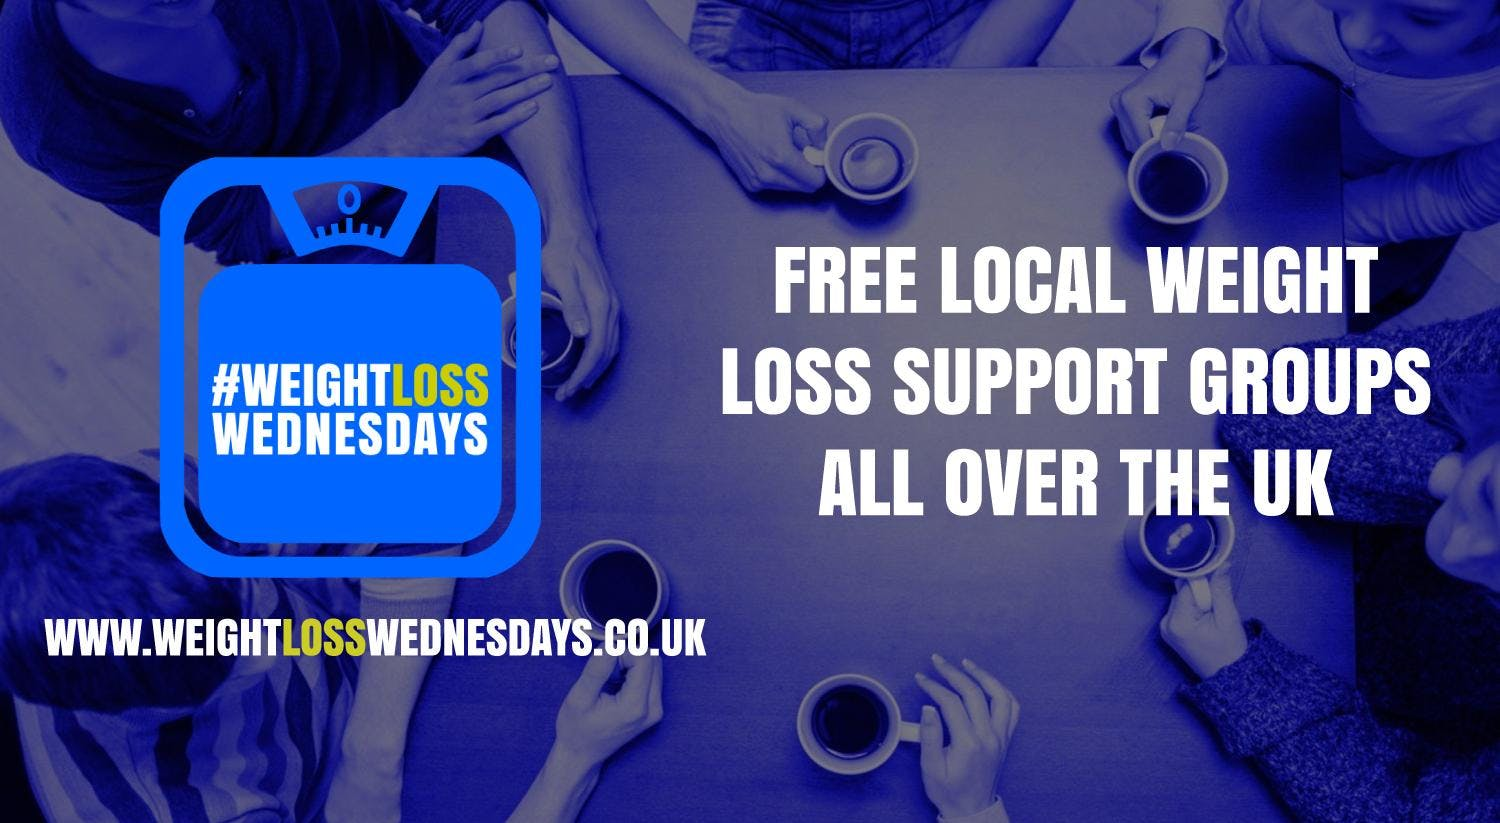 WEIGHT LOSS WEDNESDAYS! Free weekly support group in Ormskirk